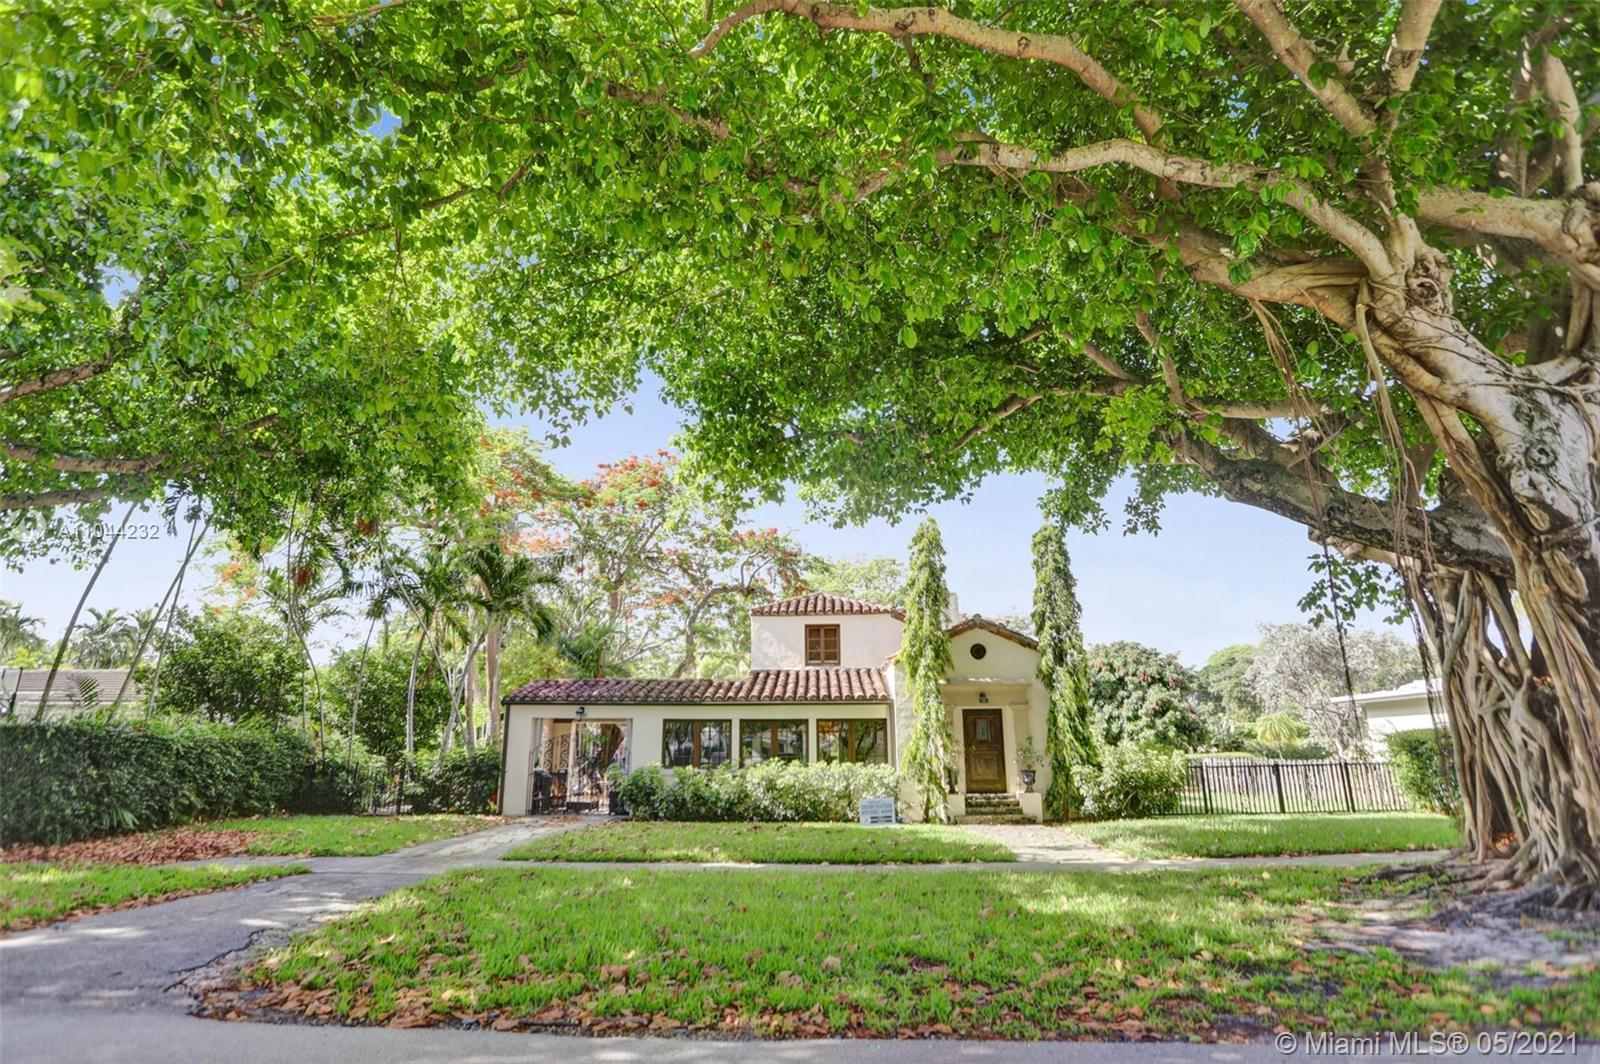 Stunning Mediterranean Revival, Historic Landmark home is located on a coveted street across from Co